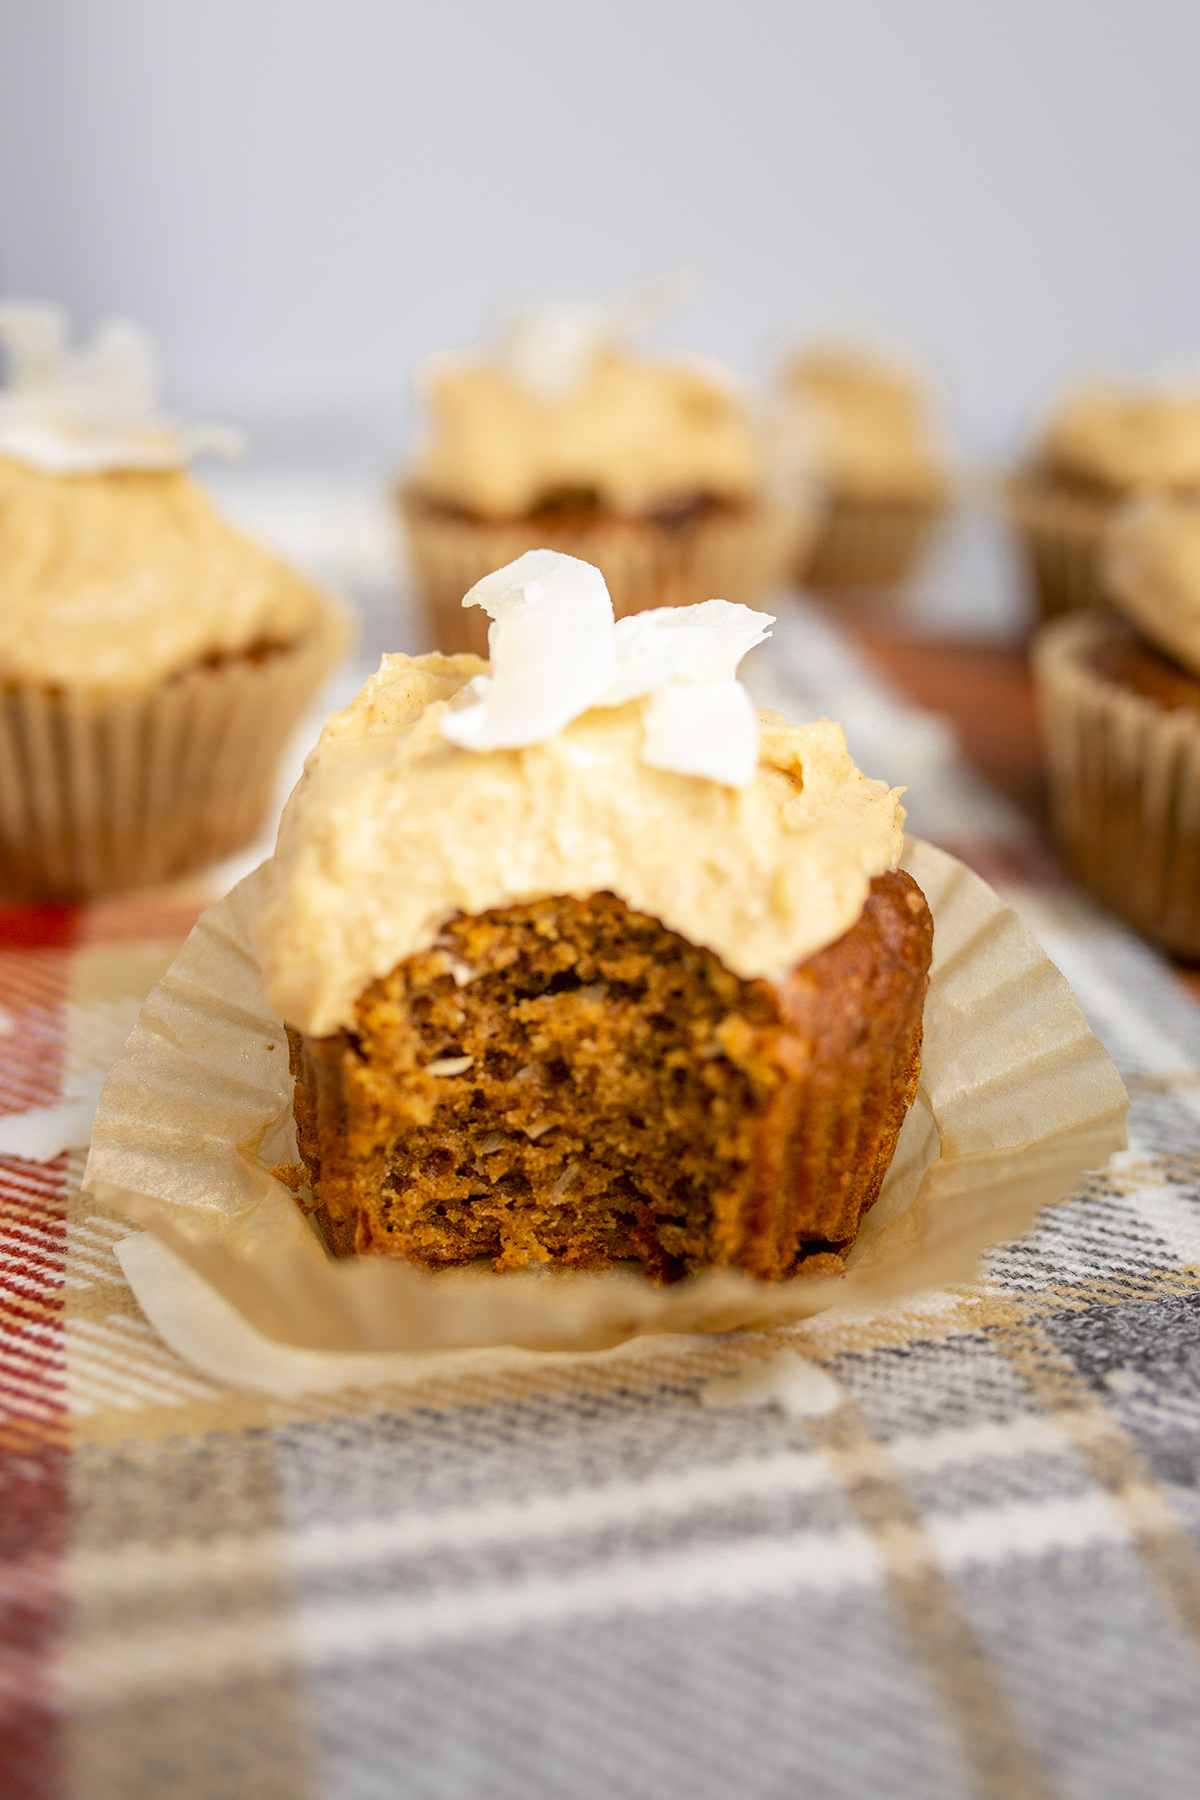 Homemade Low Carb Pumpkin Spice Cupcakes recipe made with almond flour and cream cheese icing